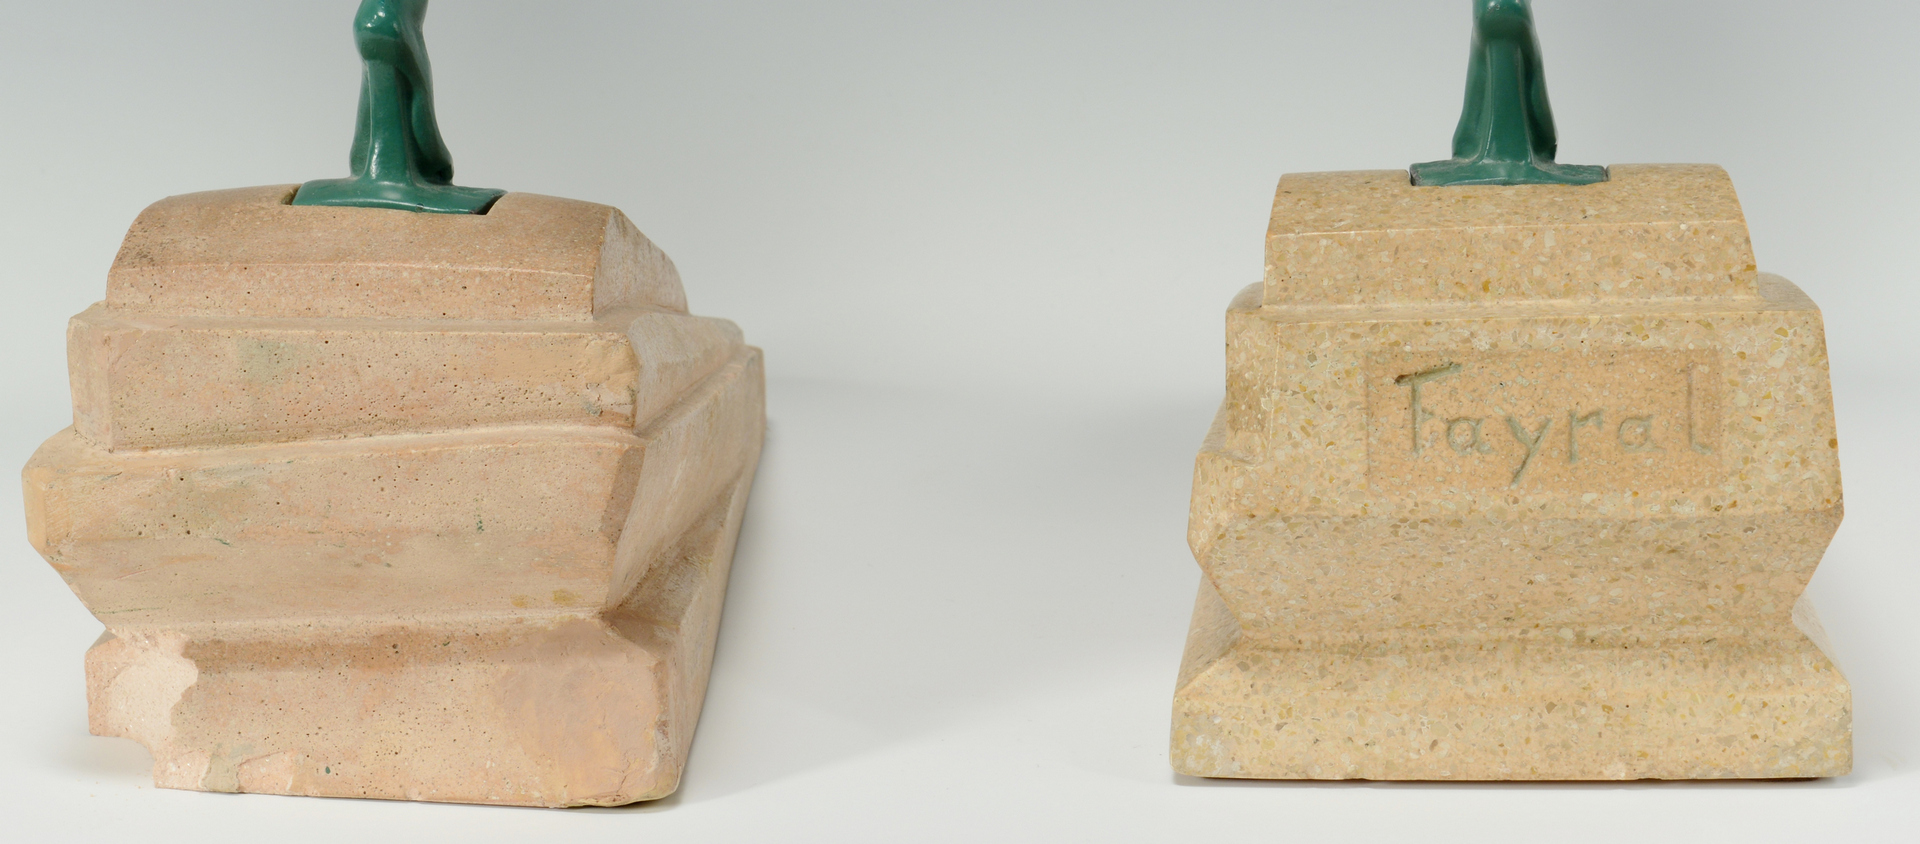 Lot 3088342: Two Art Deco Figures on stone bases, Fayral